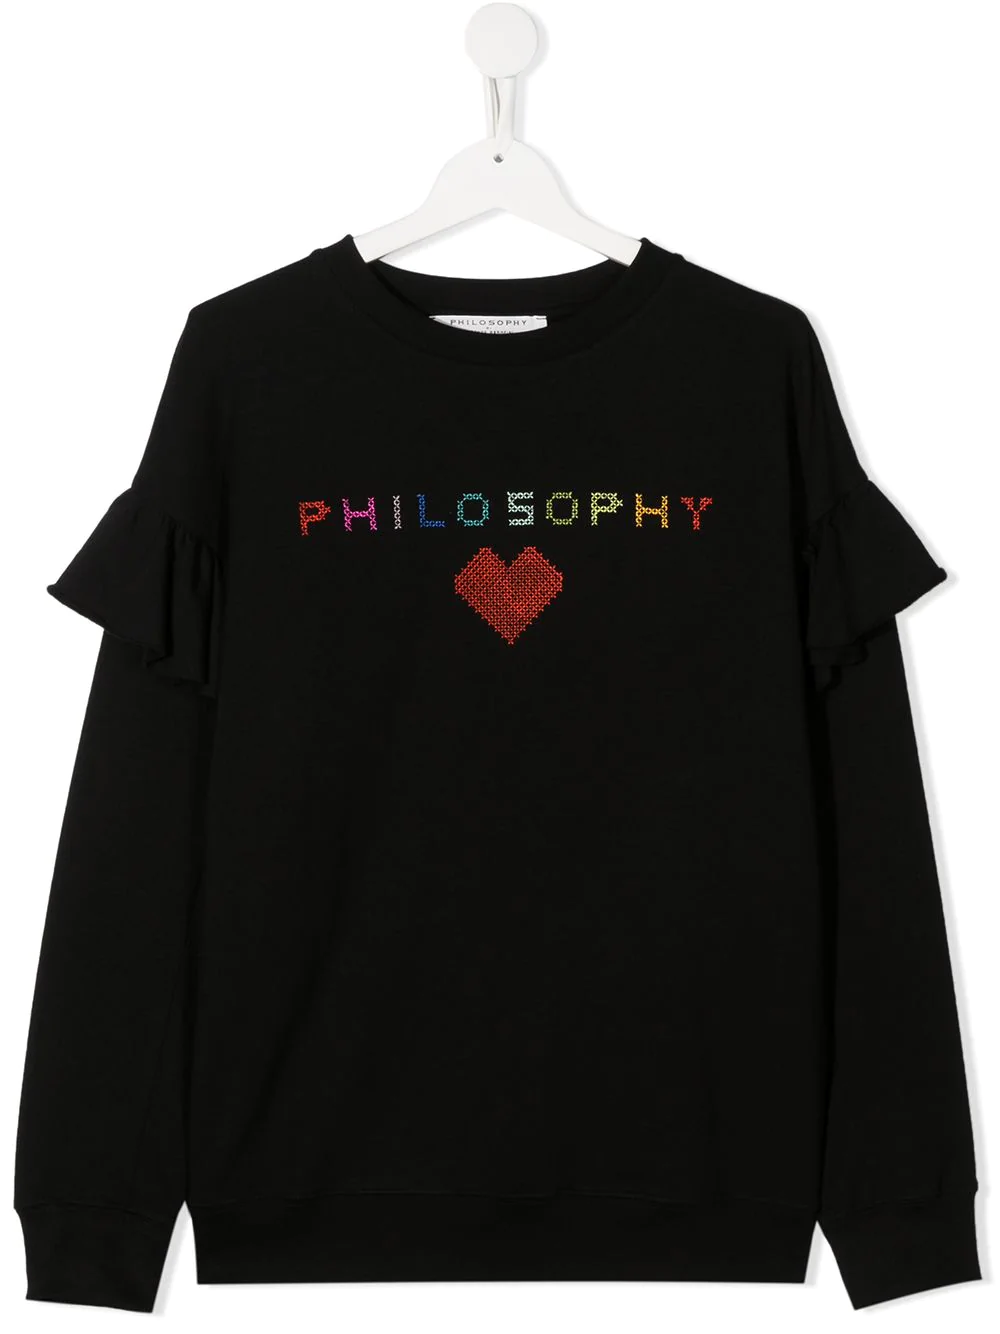 Sweatshirt Philosophy kids PHILOSOPHY KIDS | -108764232 | PJFE41FE147ZH0050046T